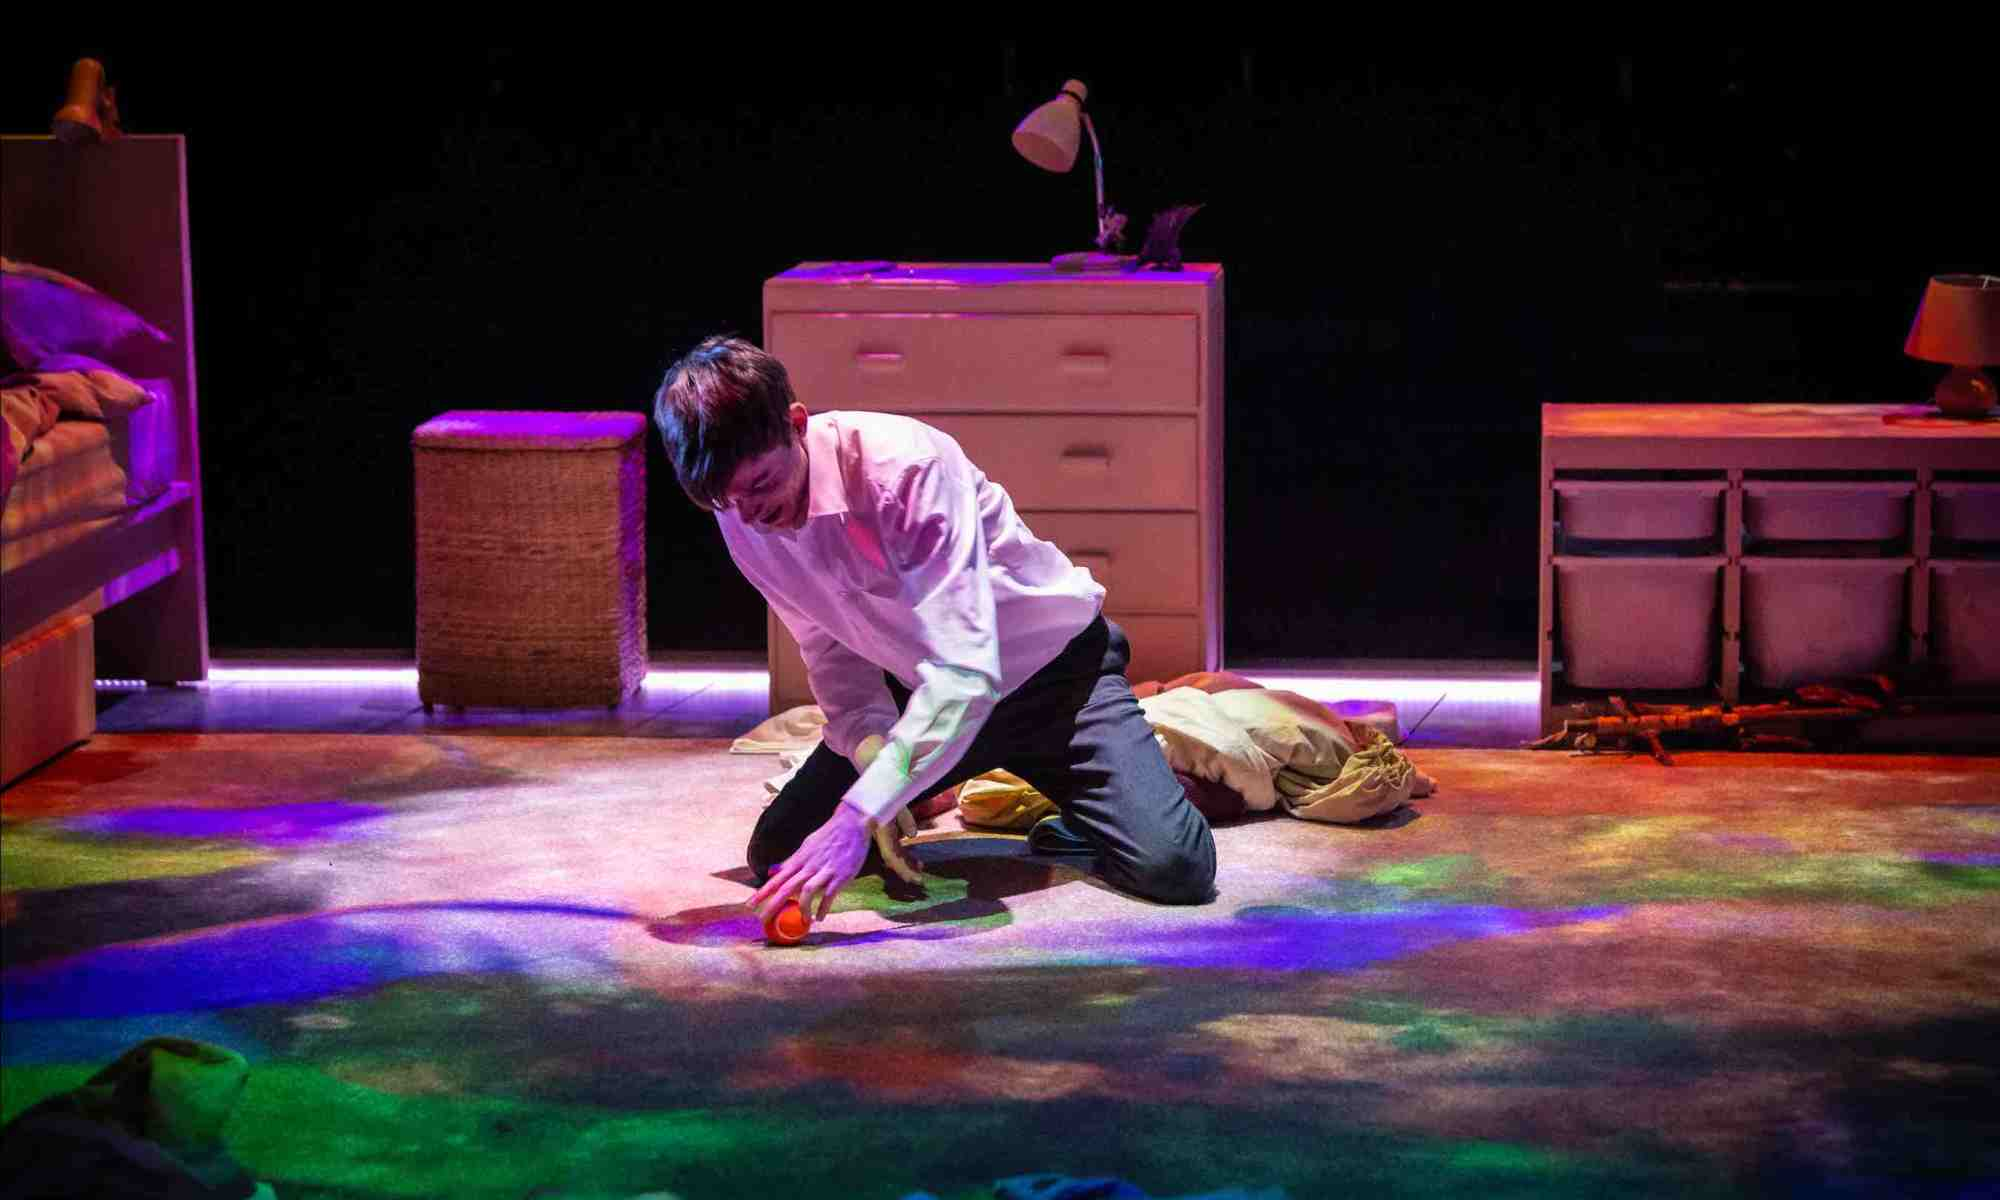 A white teenager in school uniform (white collared shirt) kneels and plays with a ball in his bedroom, the floor of which is lit up in multicolour.